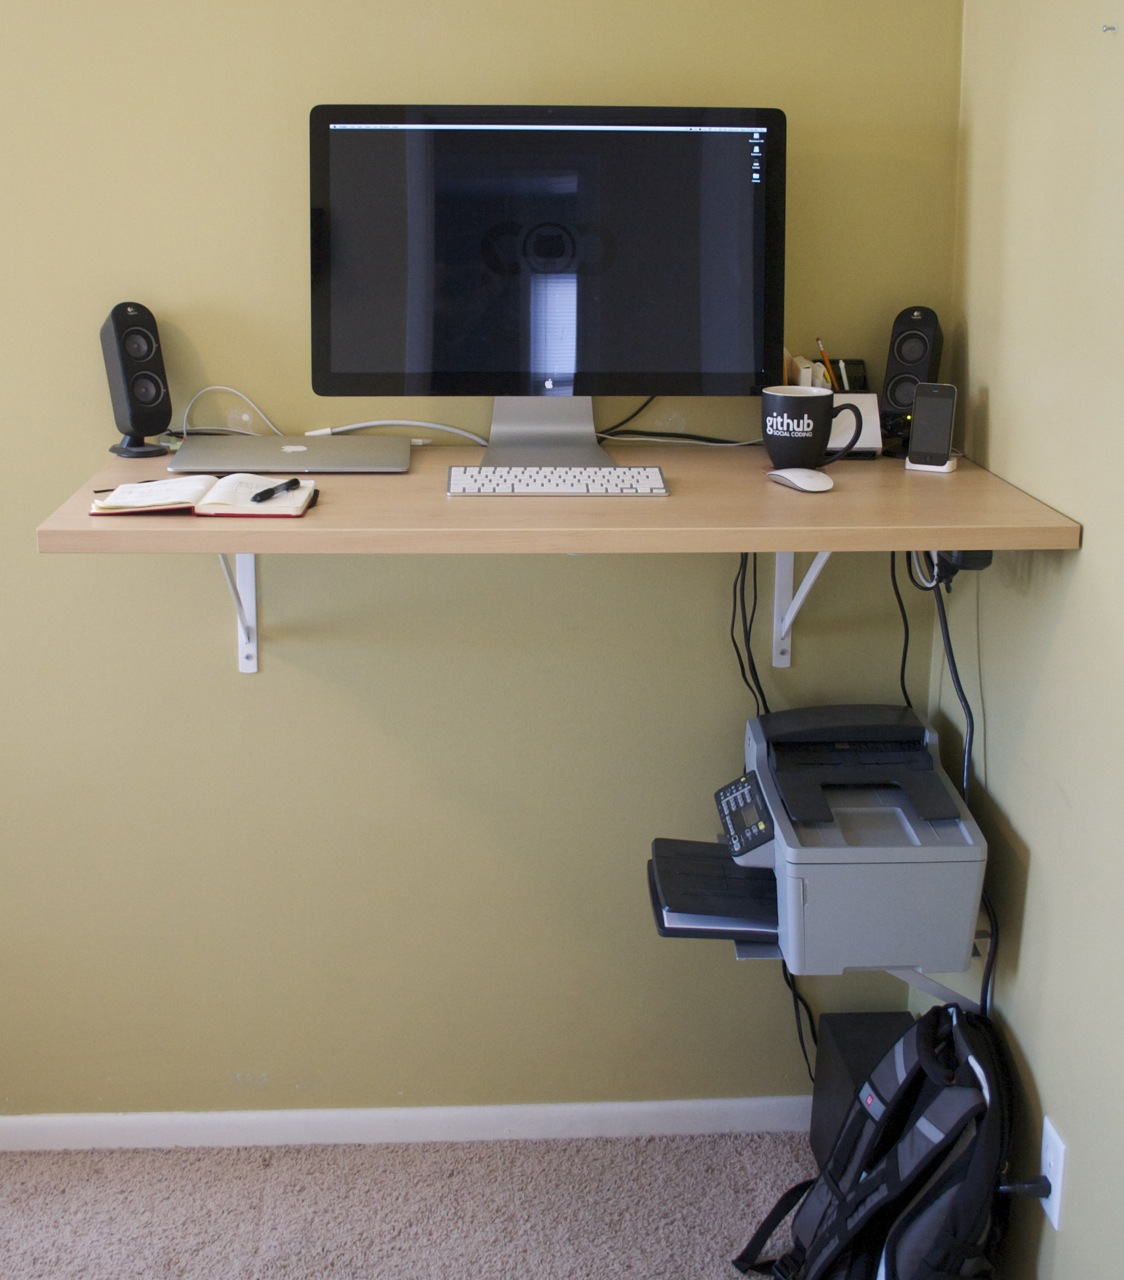 21 DIY Standing or Stand Up Desk Ideas | Guide Patterns